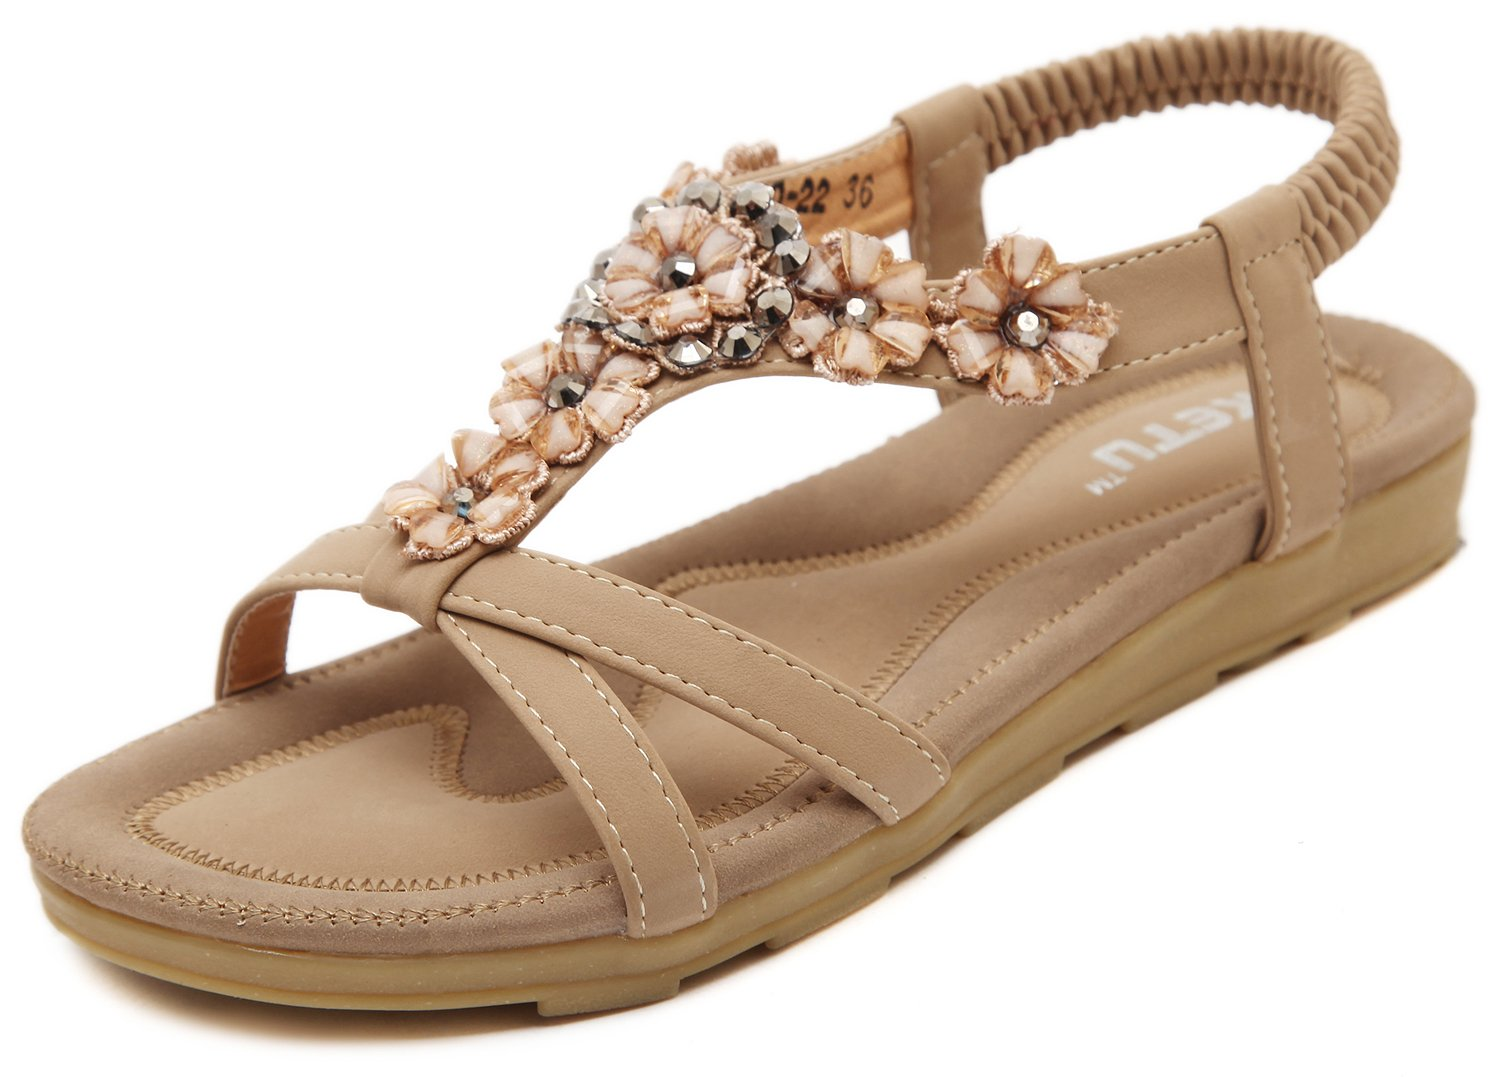 Women's Glitter Cross Strap Sandals, Bohemian Summer Flat Sandals, Nude Bling Floral Rhinestone Gem Elastic Back Strap, Comfy Shoes for Dressy Casual Jeans Daily Wear Beach Holiday Vacation Everyday